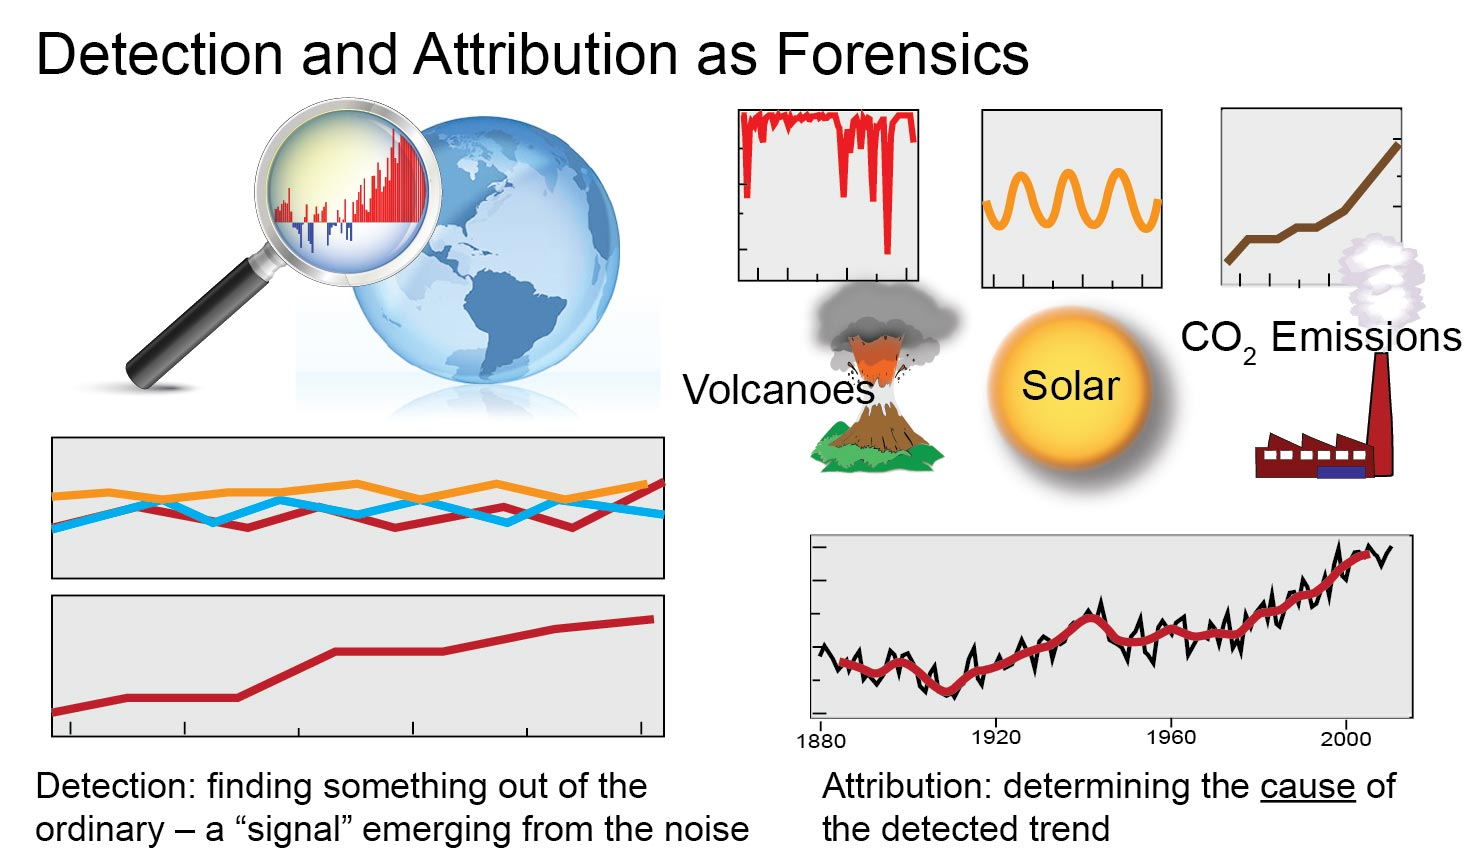 Detection and Attribution as Forensics